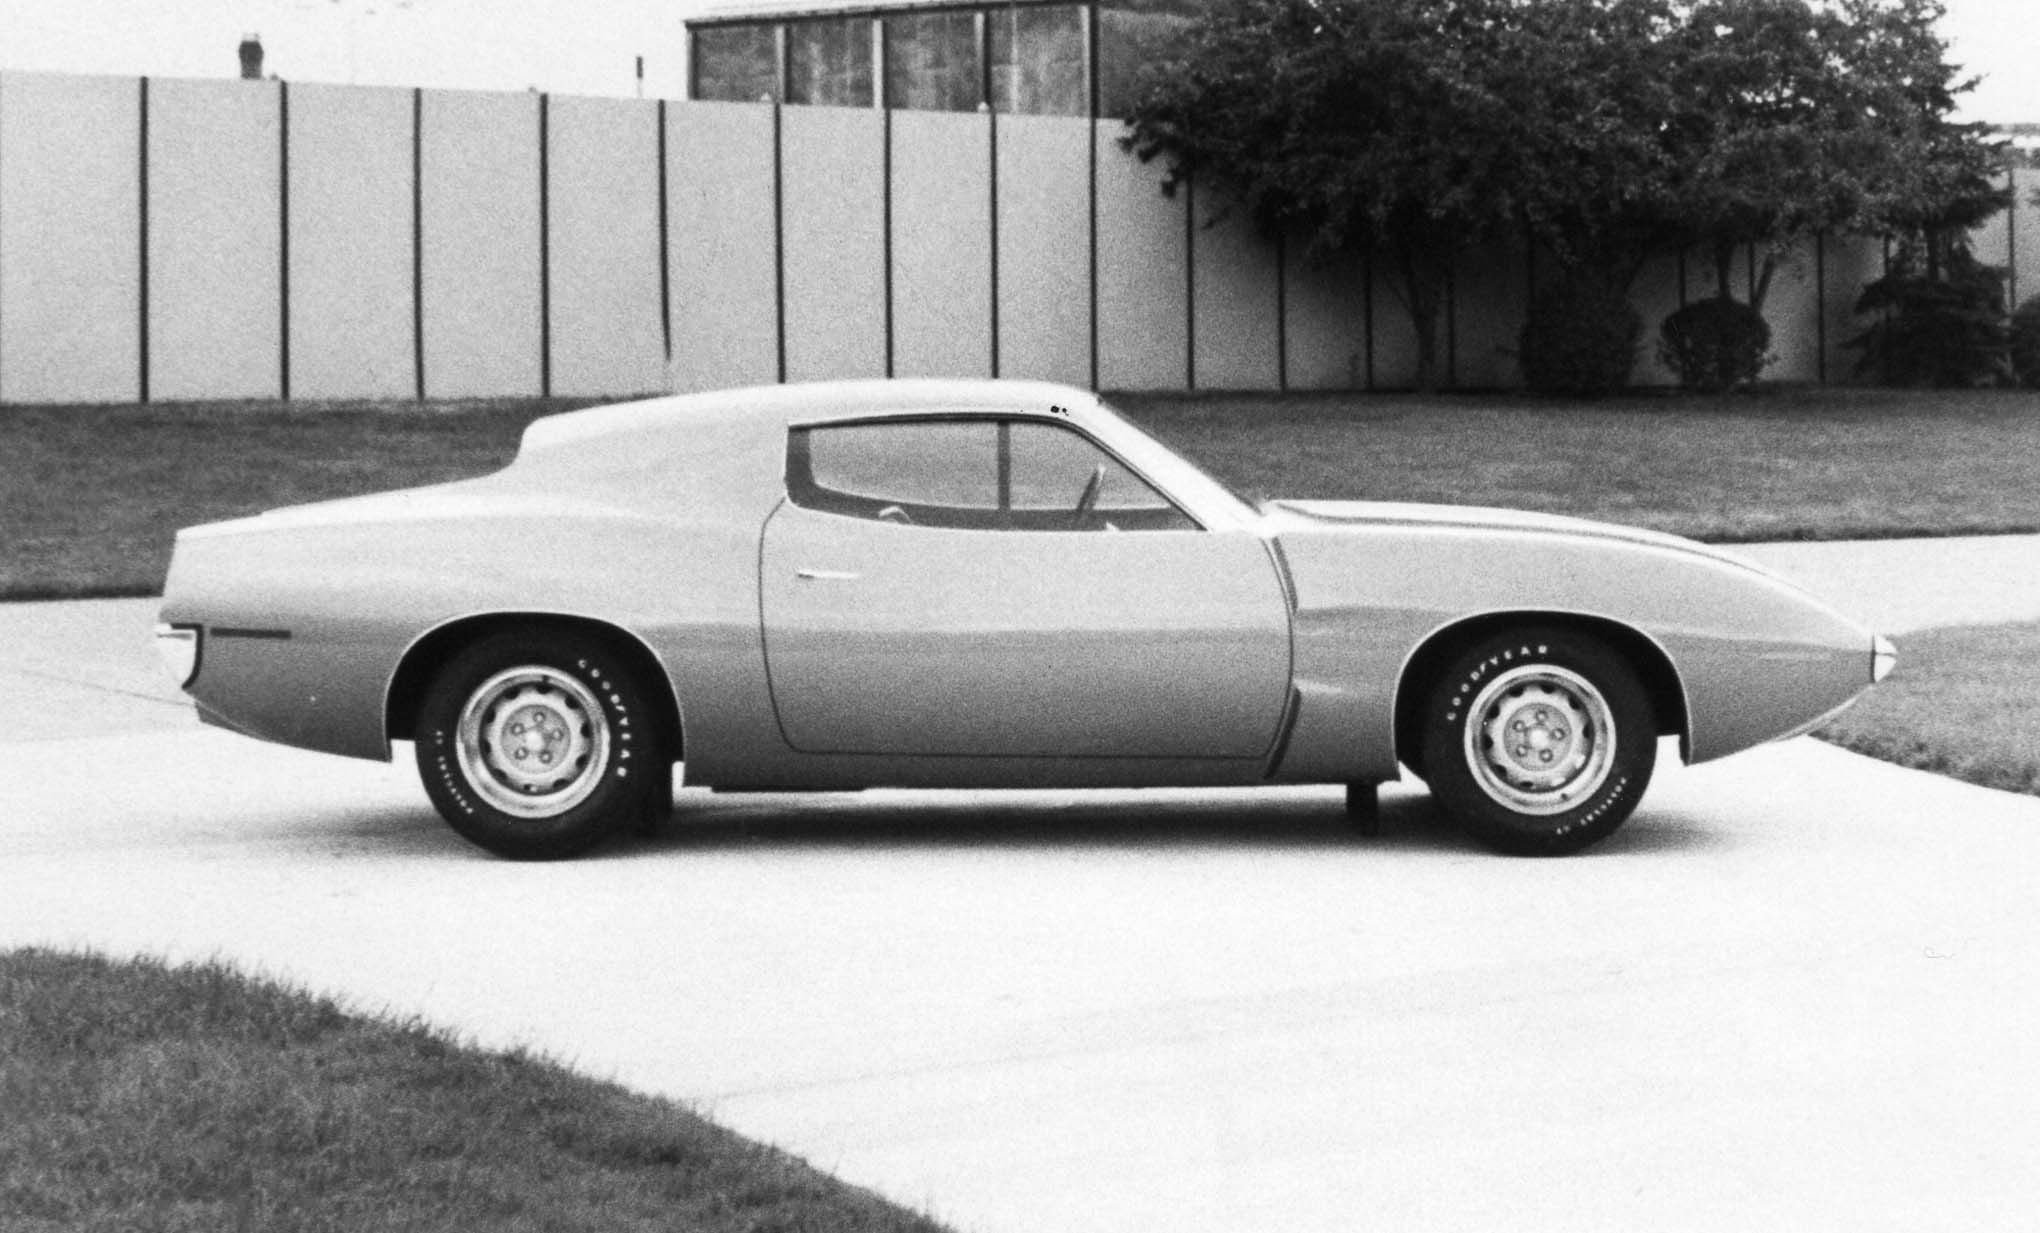 "Side view of the ""Cincinnati car"" shows the compromise rear roofline that included the tunnel back and recessed backlight. The combination formal/fastback roofline looks out of place compared to the rest of the bodyline. To attain the roofline as shown, designers planned to recline the rear seat passengers. Smaller front fender air extractors were approved."